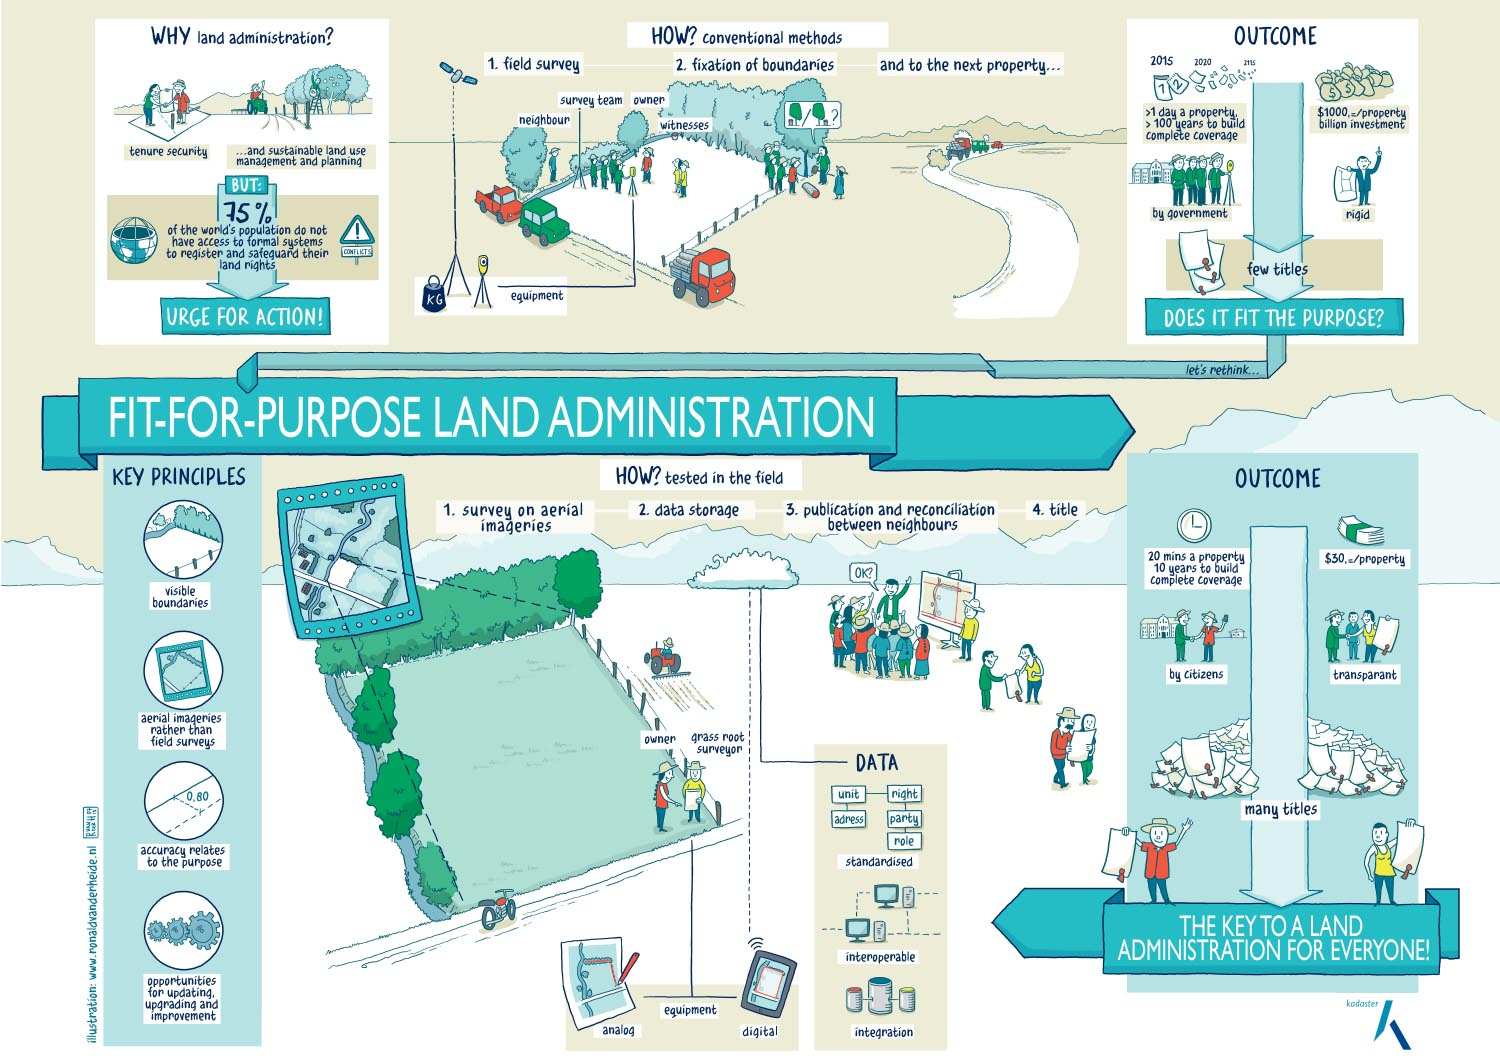 Ronald van der Heide is illustrator, infographic artist and graphic facilitator. Infographics on land administration. Theme's are sustainability, energy, fair trade, landscape